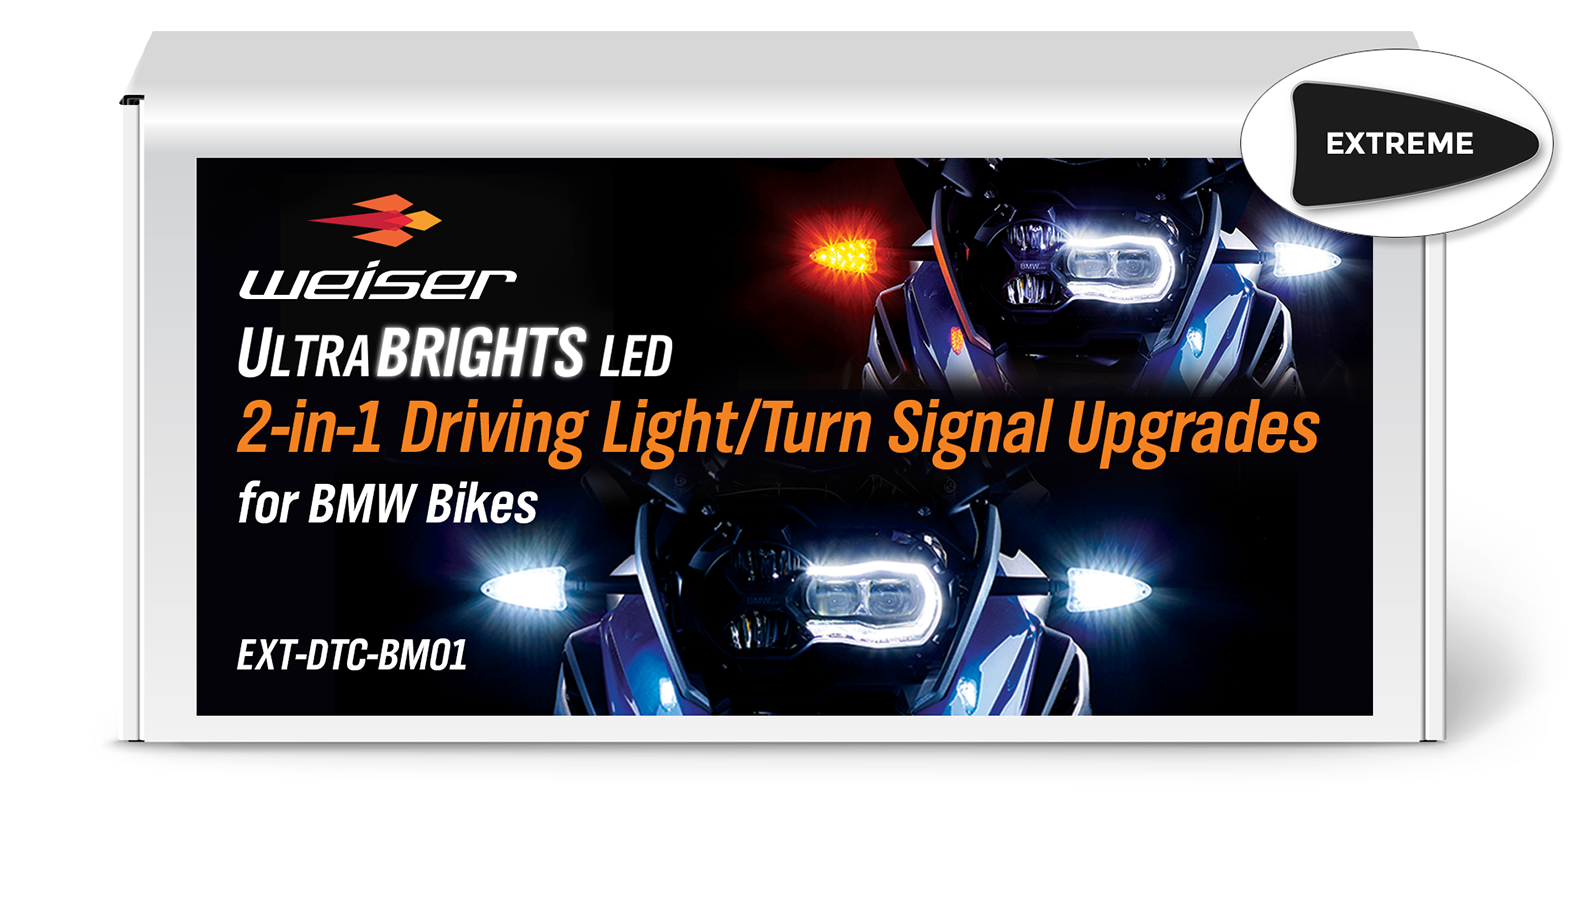 Extreme 2-in-1 LED WHITE Driving Light/AMBER Turn Signal Upgrades for BMW Motorcycles 2006-Present EXT-DTC-BM01